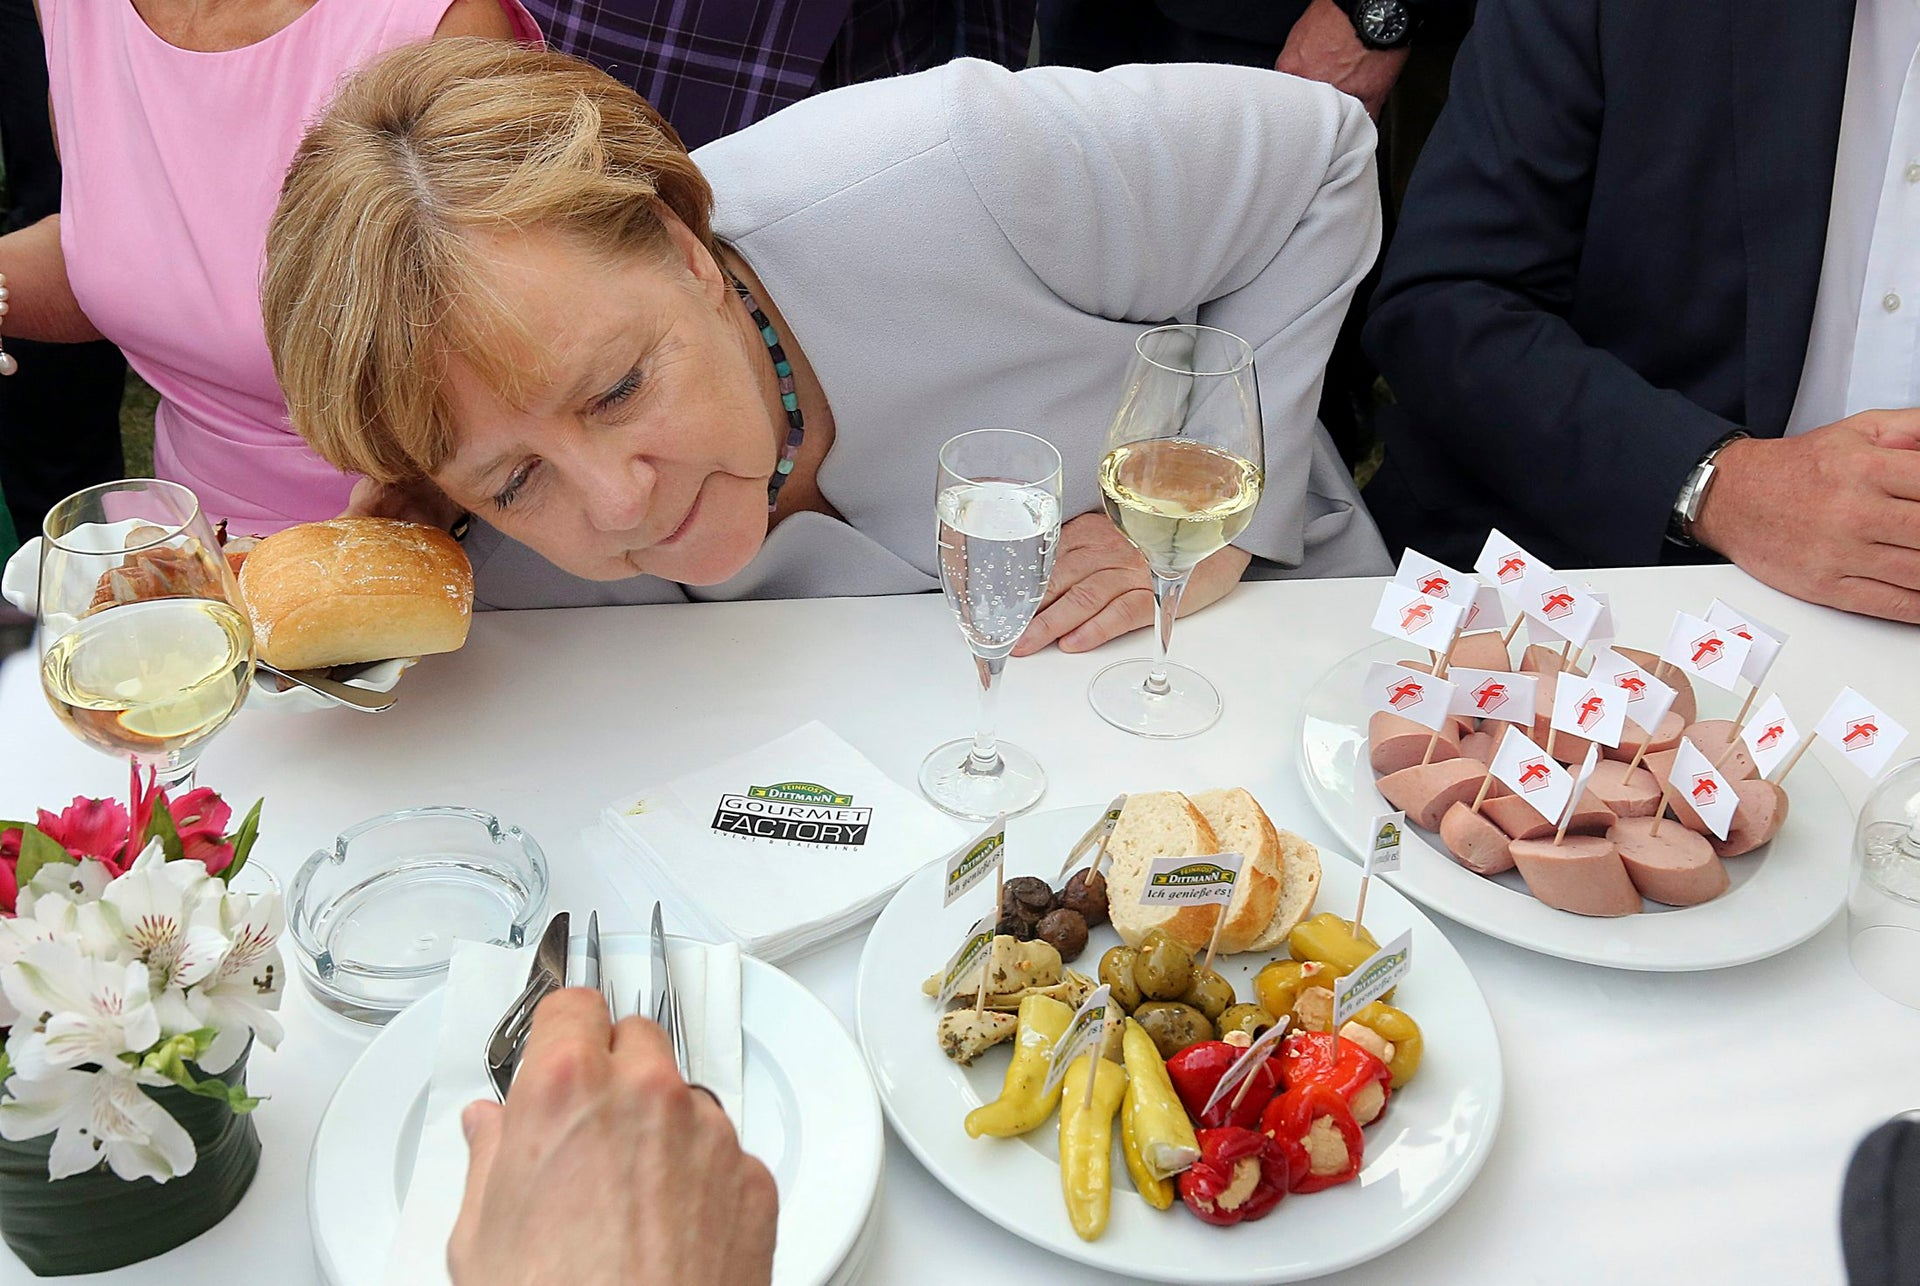 German Chancellor Angela Merkel looks at the culinary delicacies on offer during the Hesse Festival in the Hessian State Representation in Berlin, Germany, Wednesday, June 21, 2017.